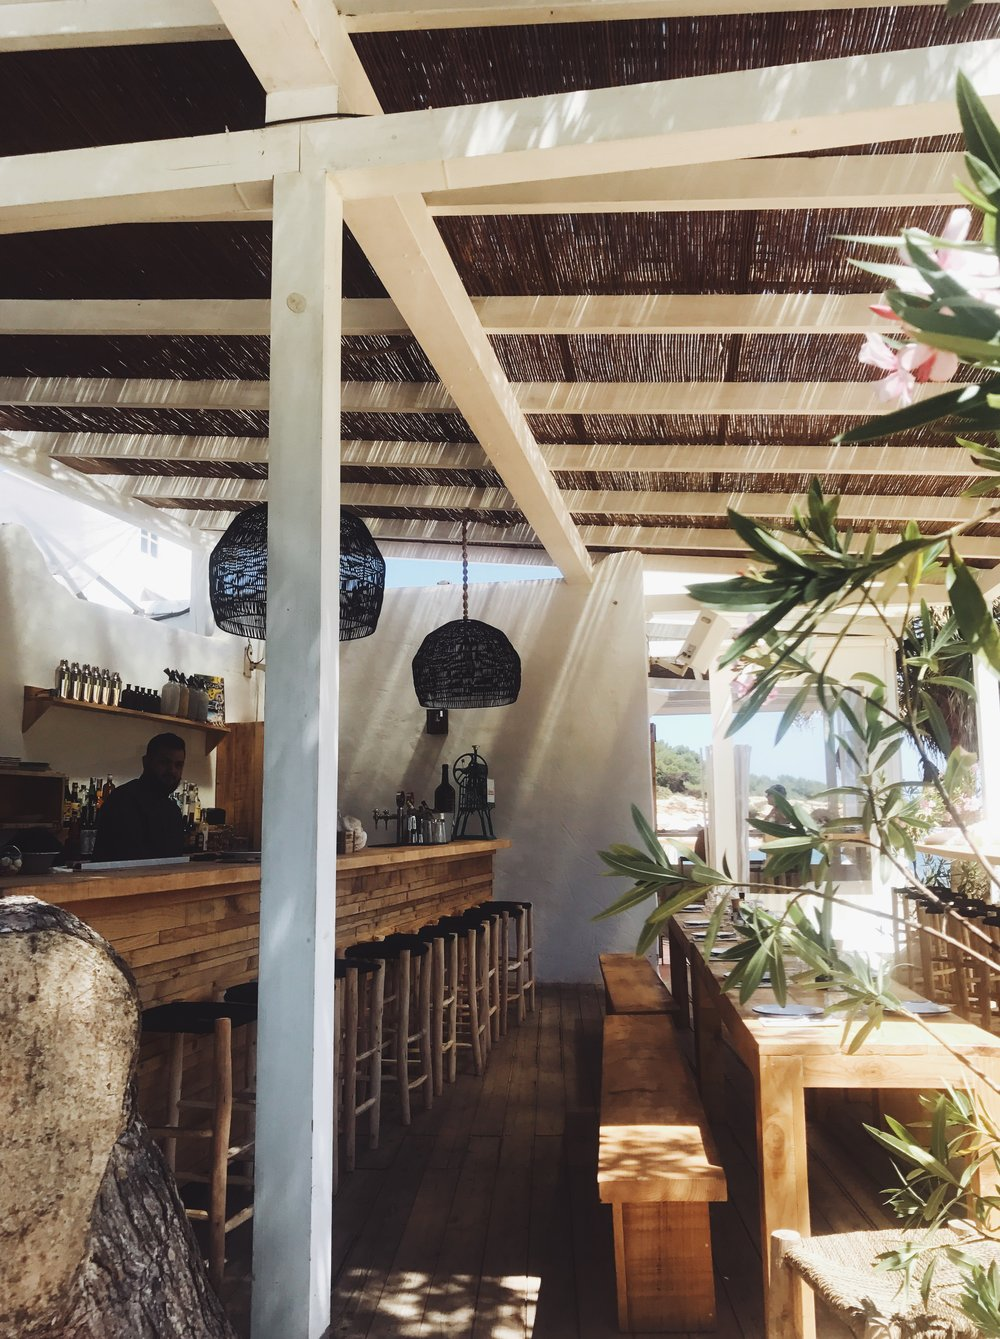 Bohemian design vibes at Cala Bonita's tapas bar